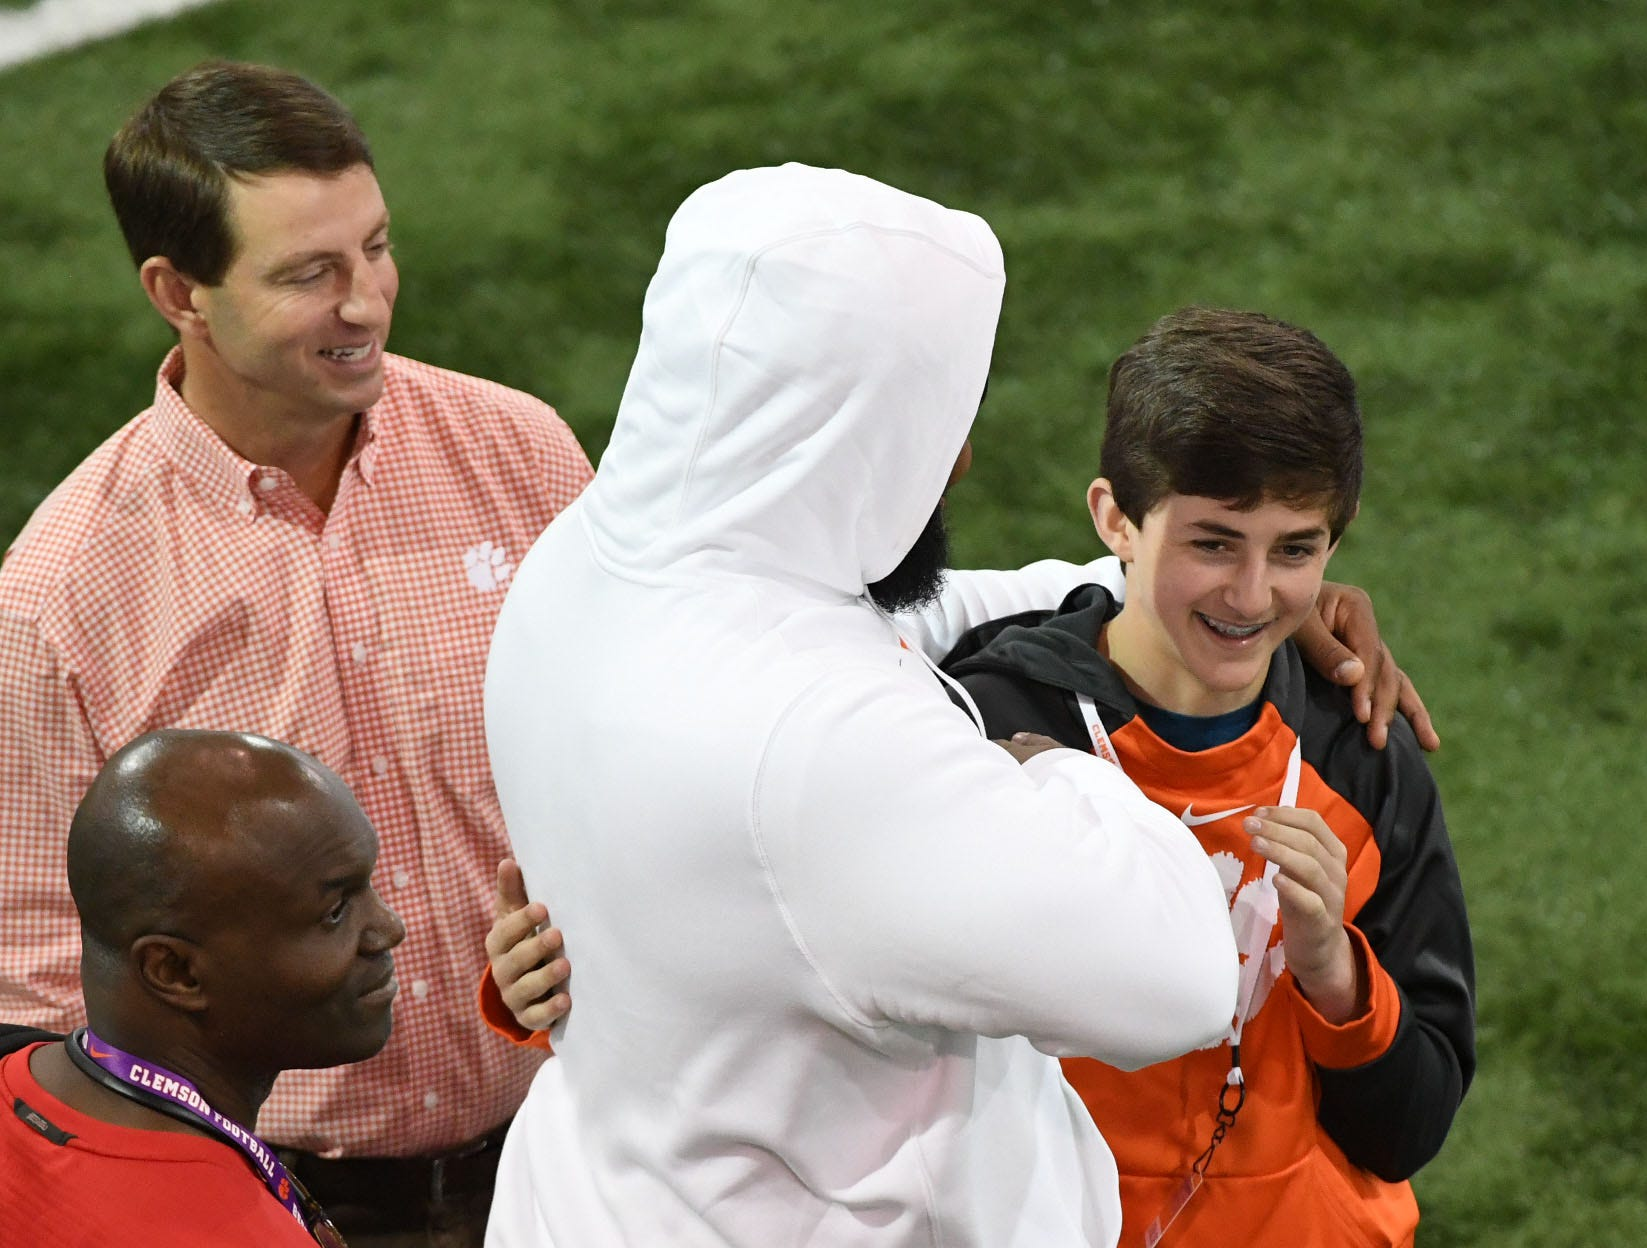 Clemson coach Dabo Swinney, left, watches NFL prospect Christian Wilkins hug his youngest son Clay Swinney, a freshman at D.W. Daniel High School, during Clemson Pro Day at the Poe Indoor Facility in Clemson, S.C. Thursday, March 14, 2019.